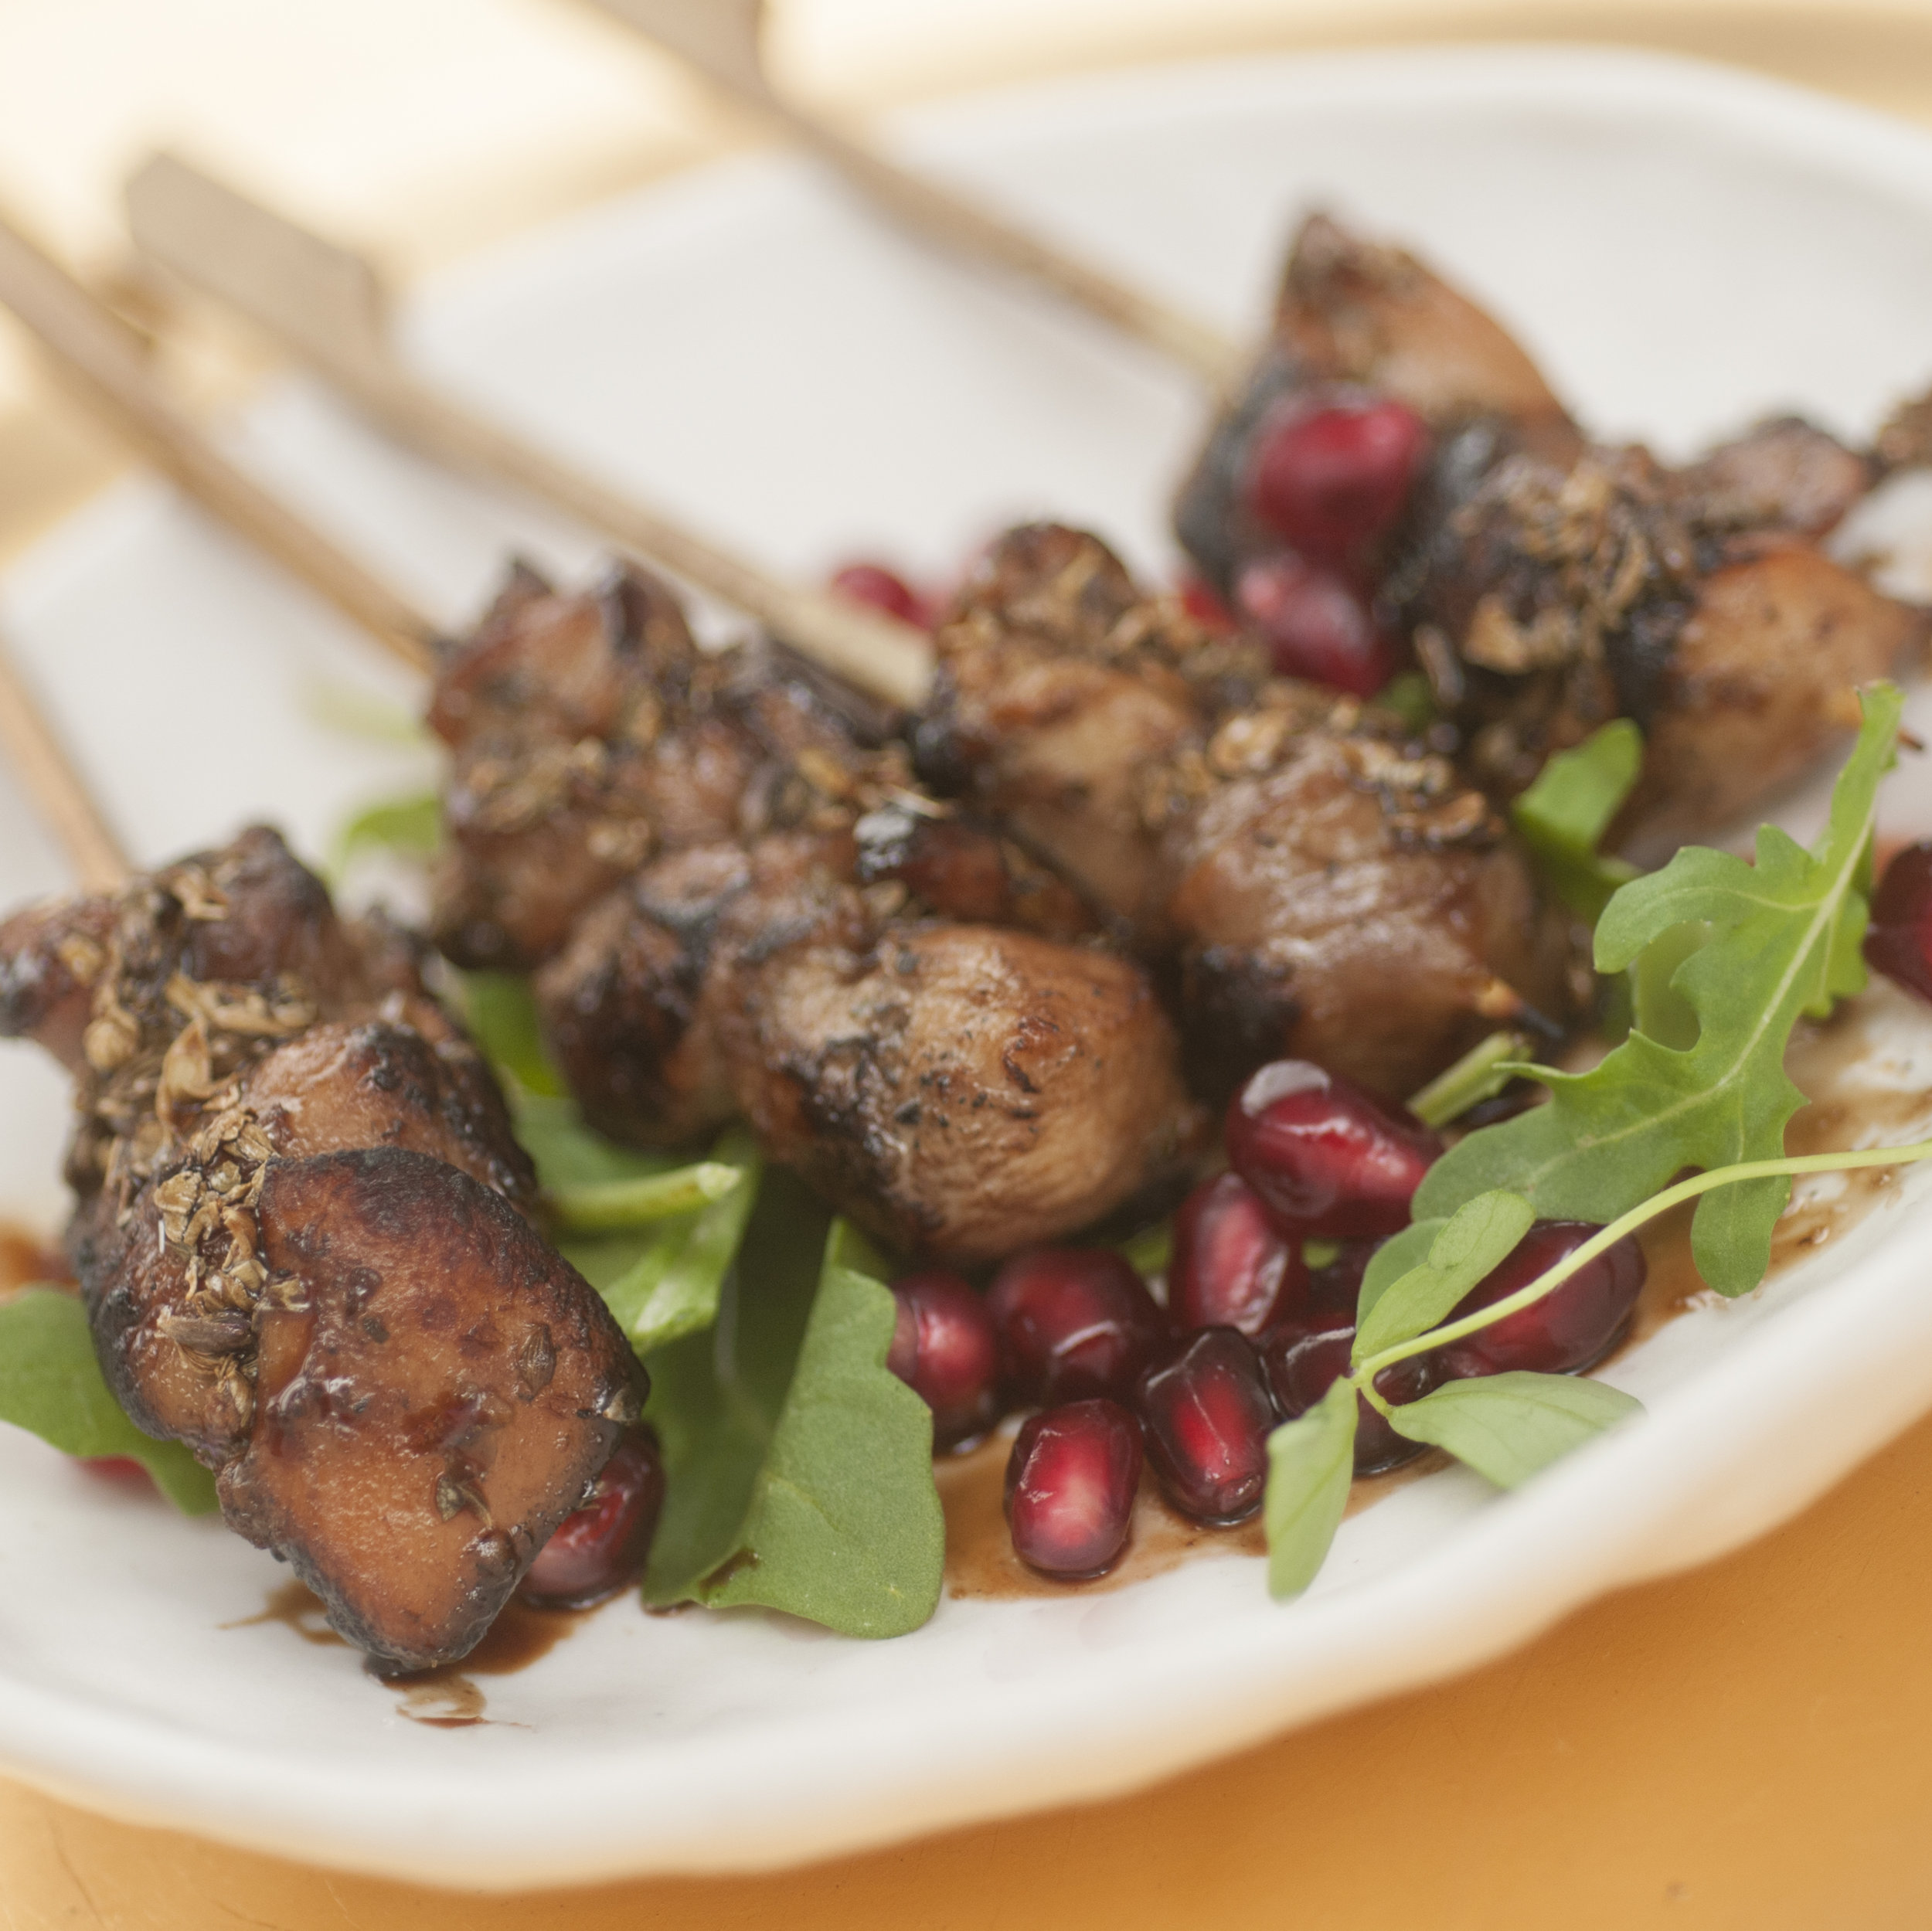 - Sticky chicken skewers with truffle honey, balsamic, and herbes de Provence